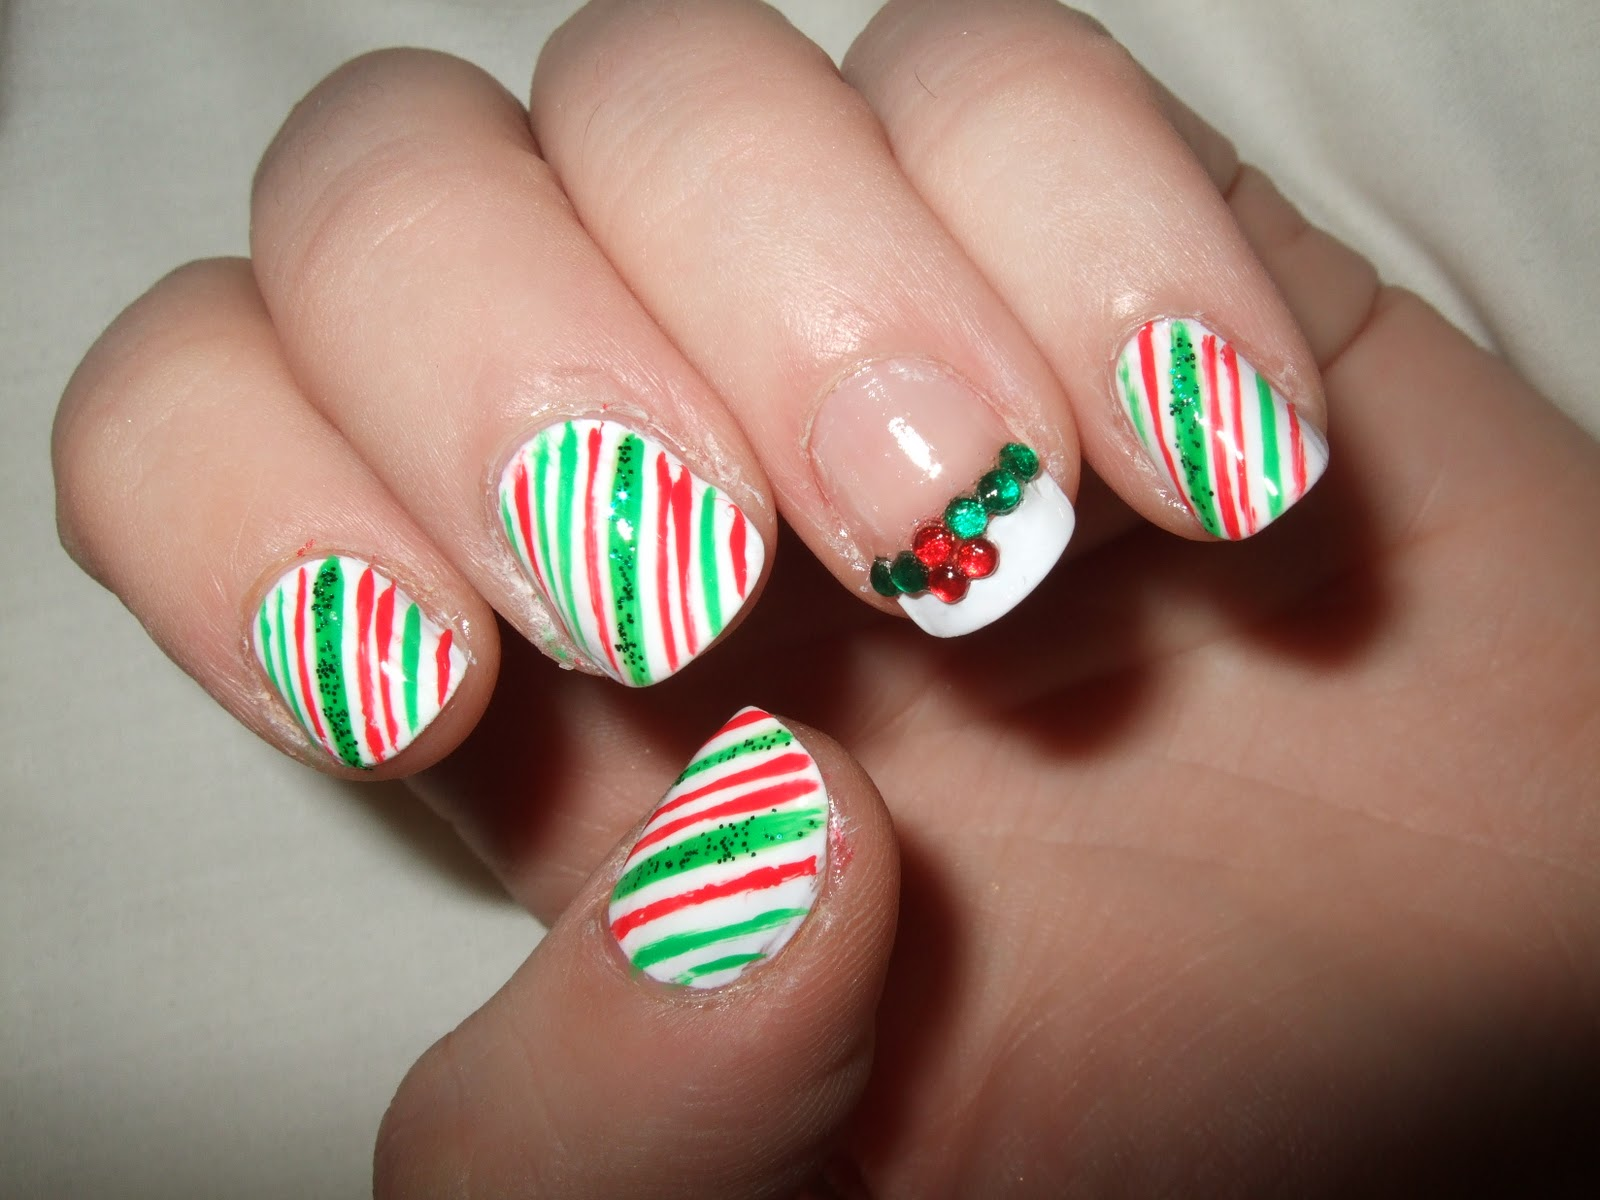 With Candy Cane Nails